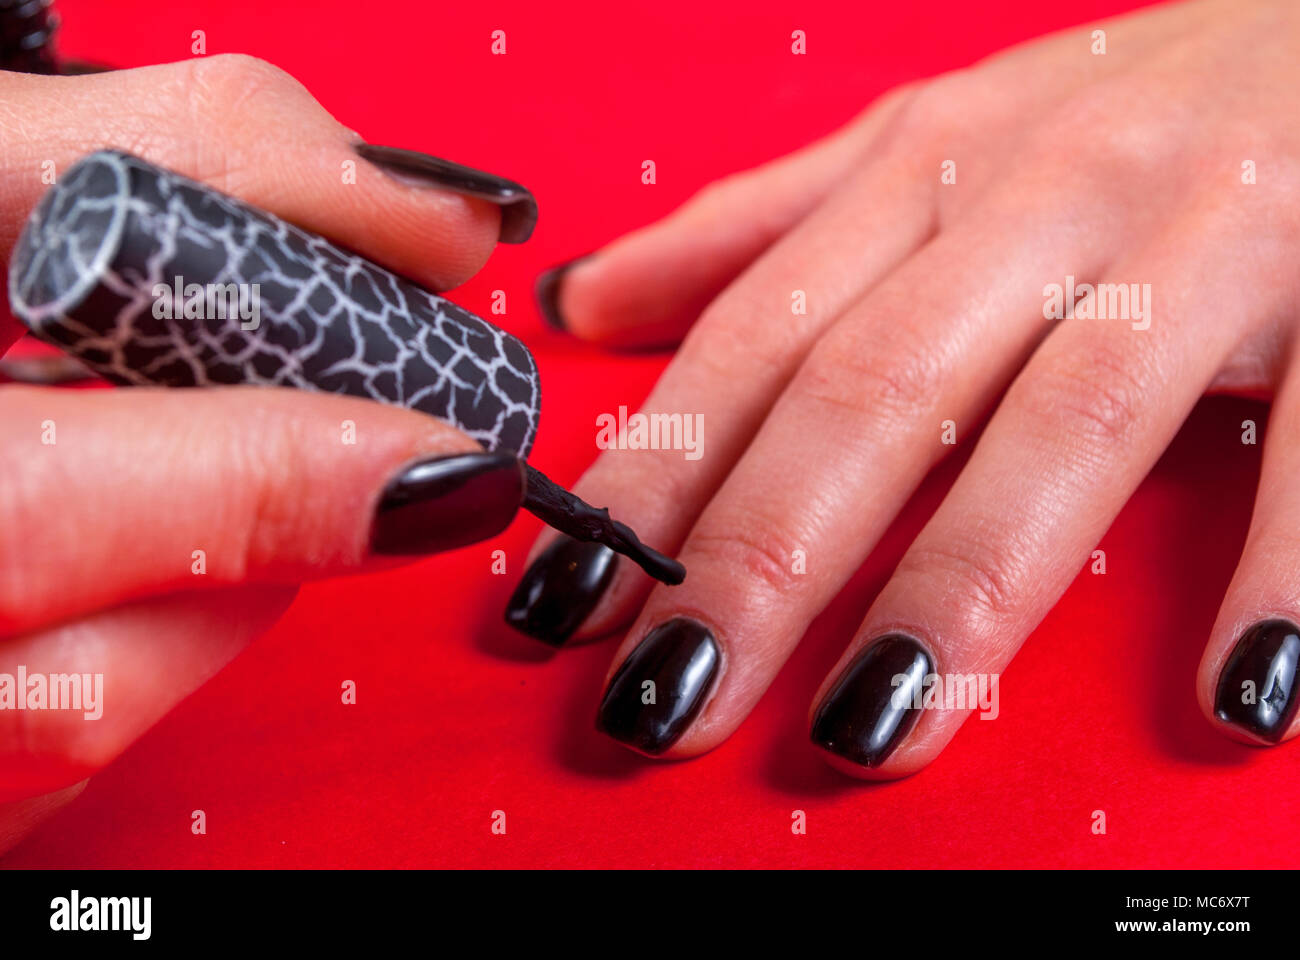 Women applying black nail polish gel herself on red background with ...